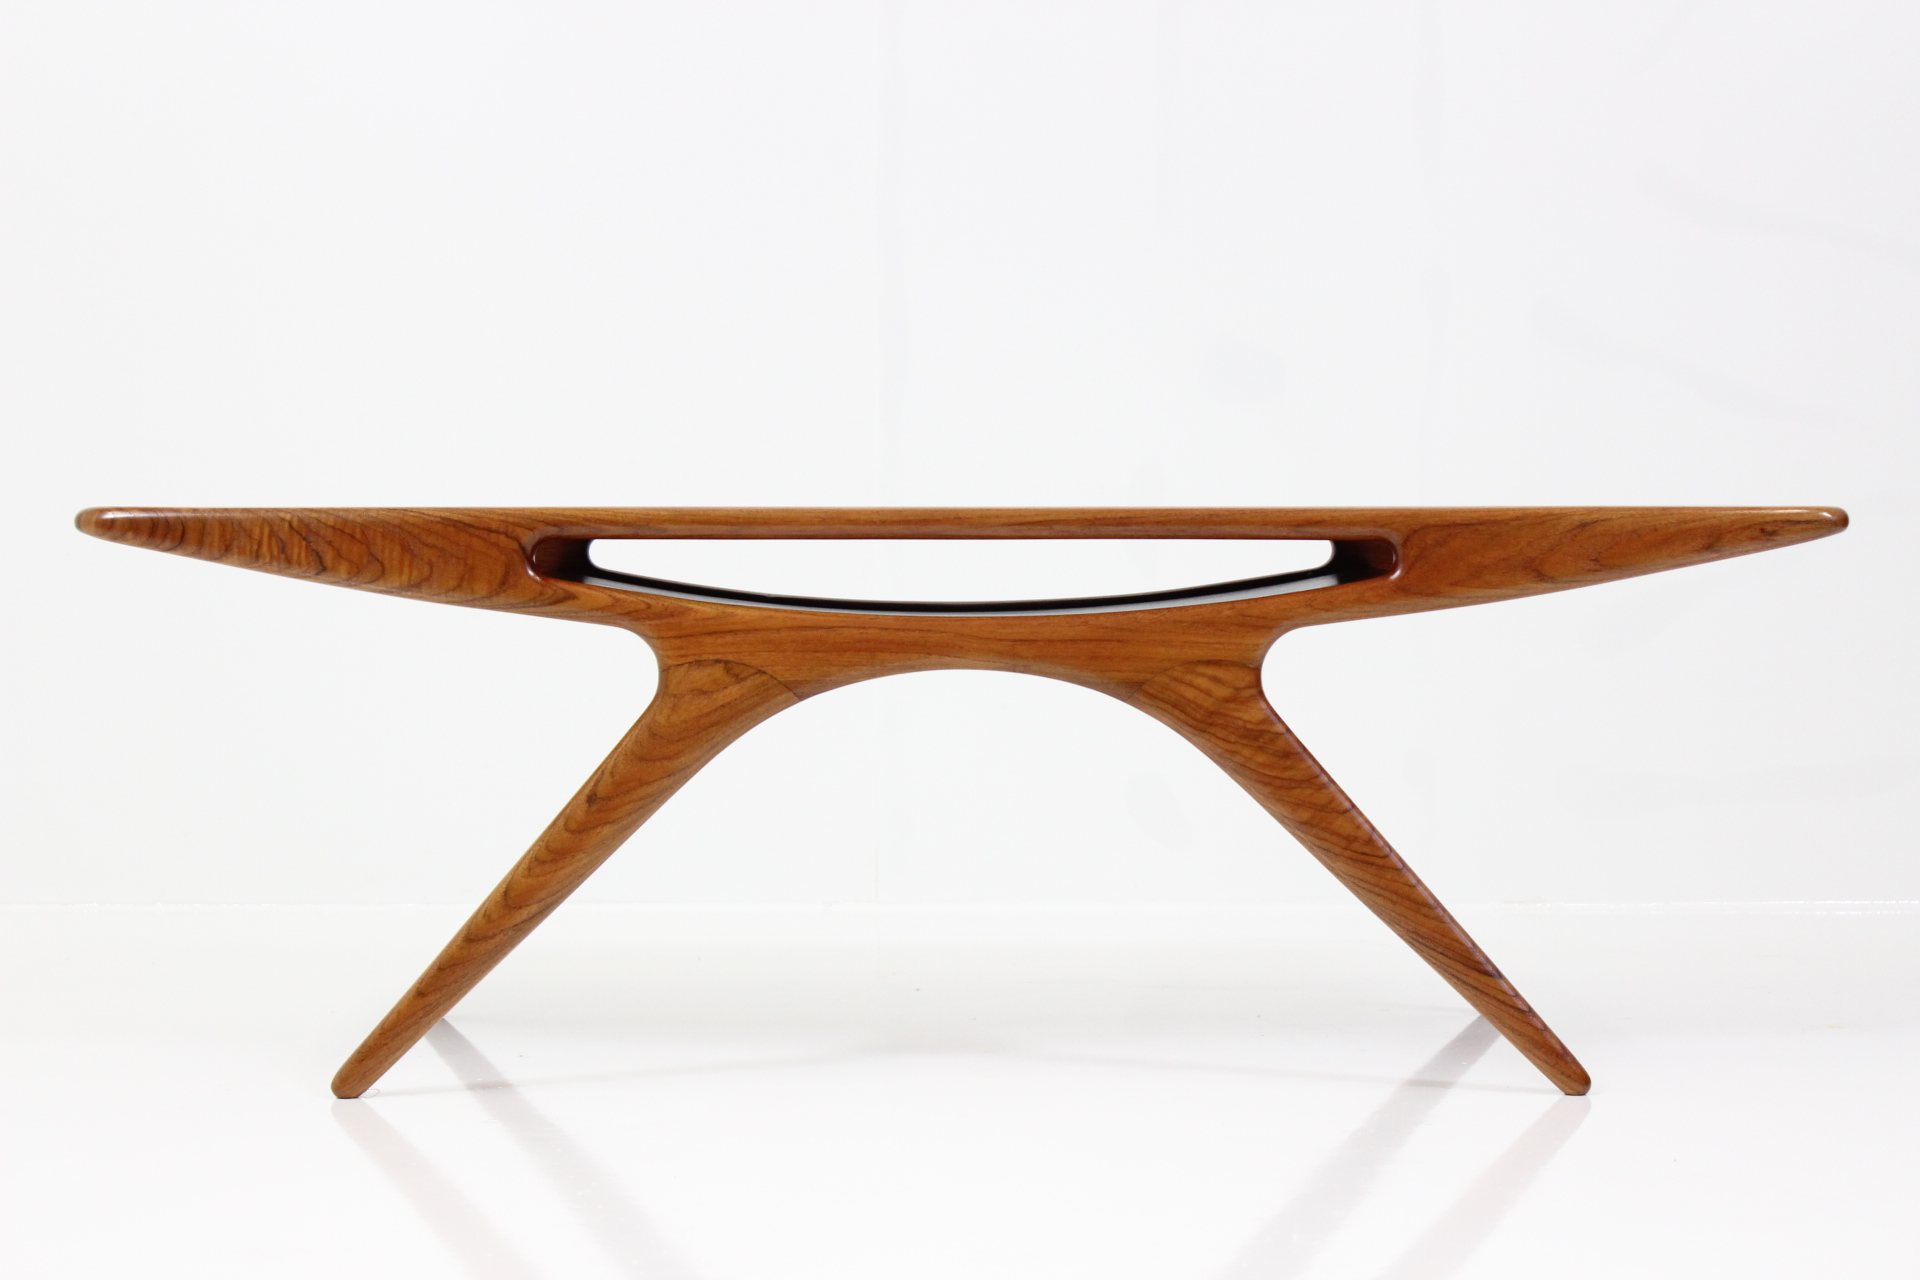 Vintage Coffee Table Smiley by Johannes Andersen for C.F. Christensen Silkeborg